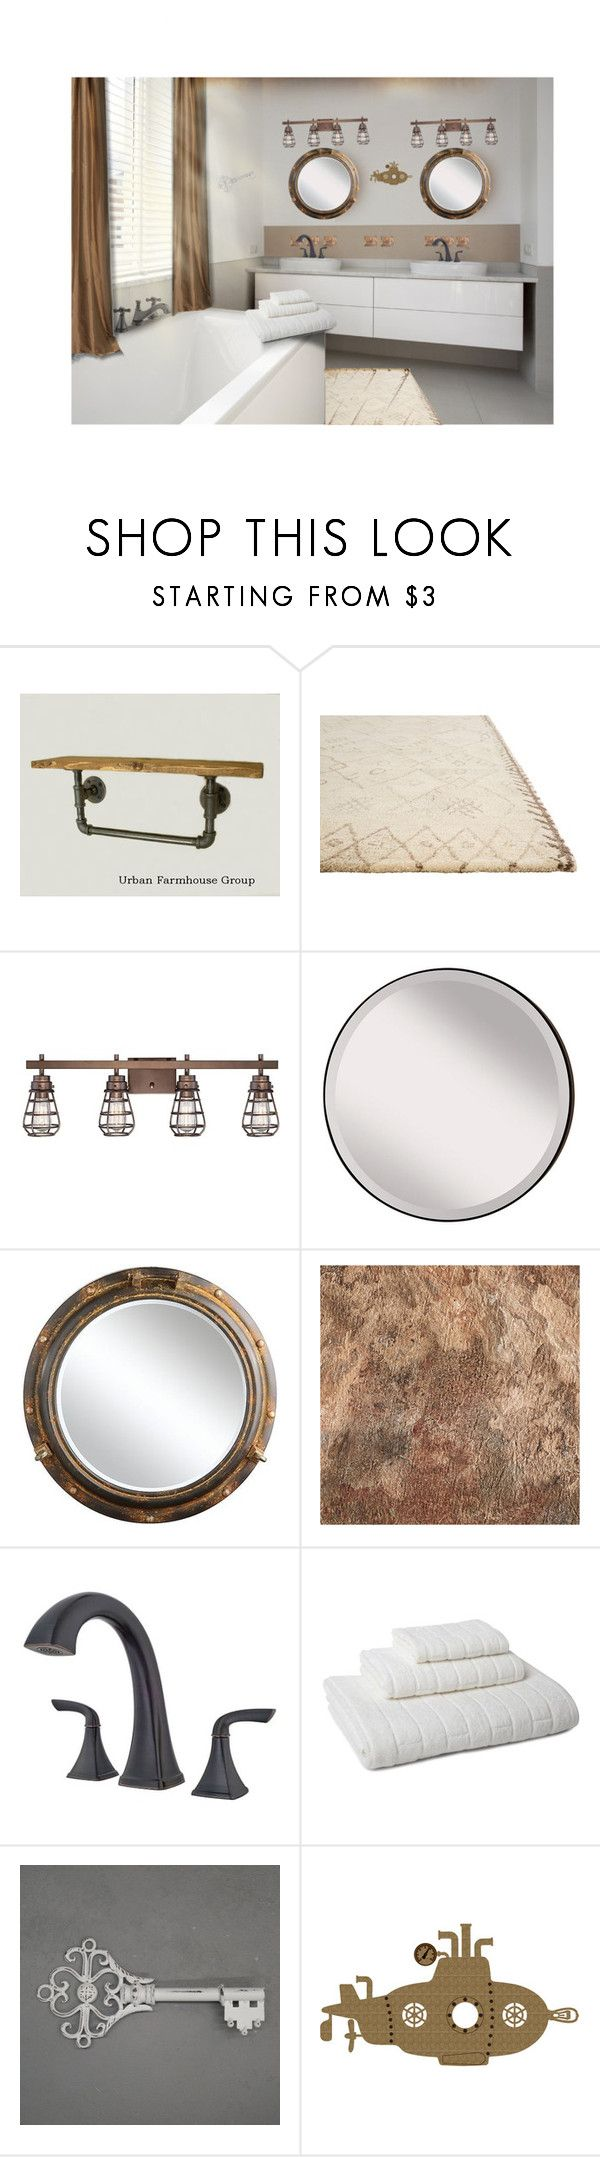 Welcome to the surreal steampunk apartment where jules verne meets tim -  Steampunk Bathroom By Havingsomefun Liked On Polyvore Featuring Interior Interiors Interior